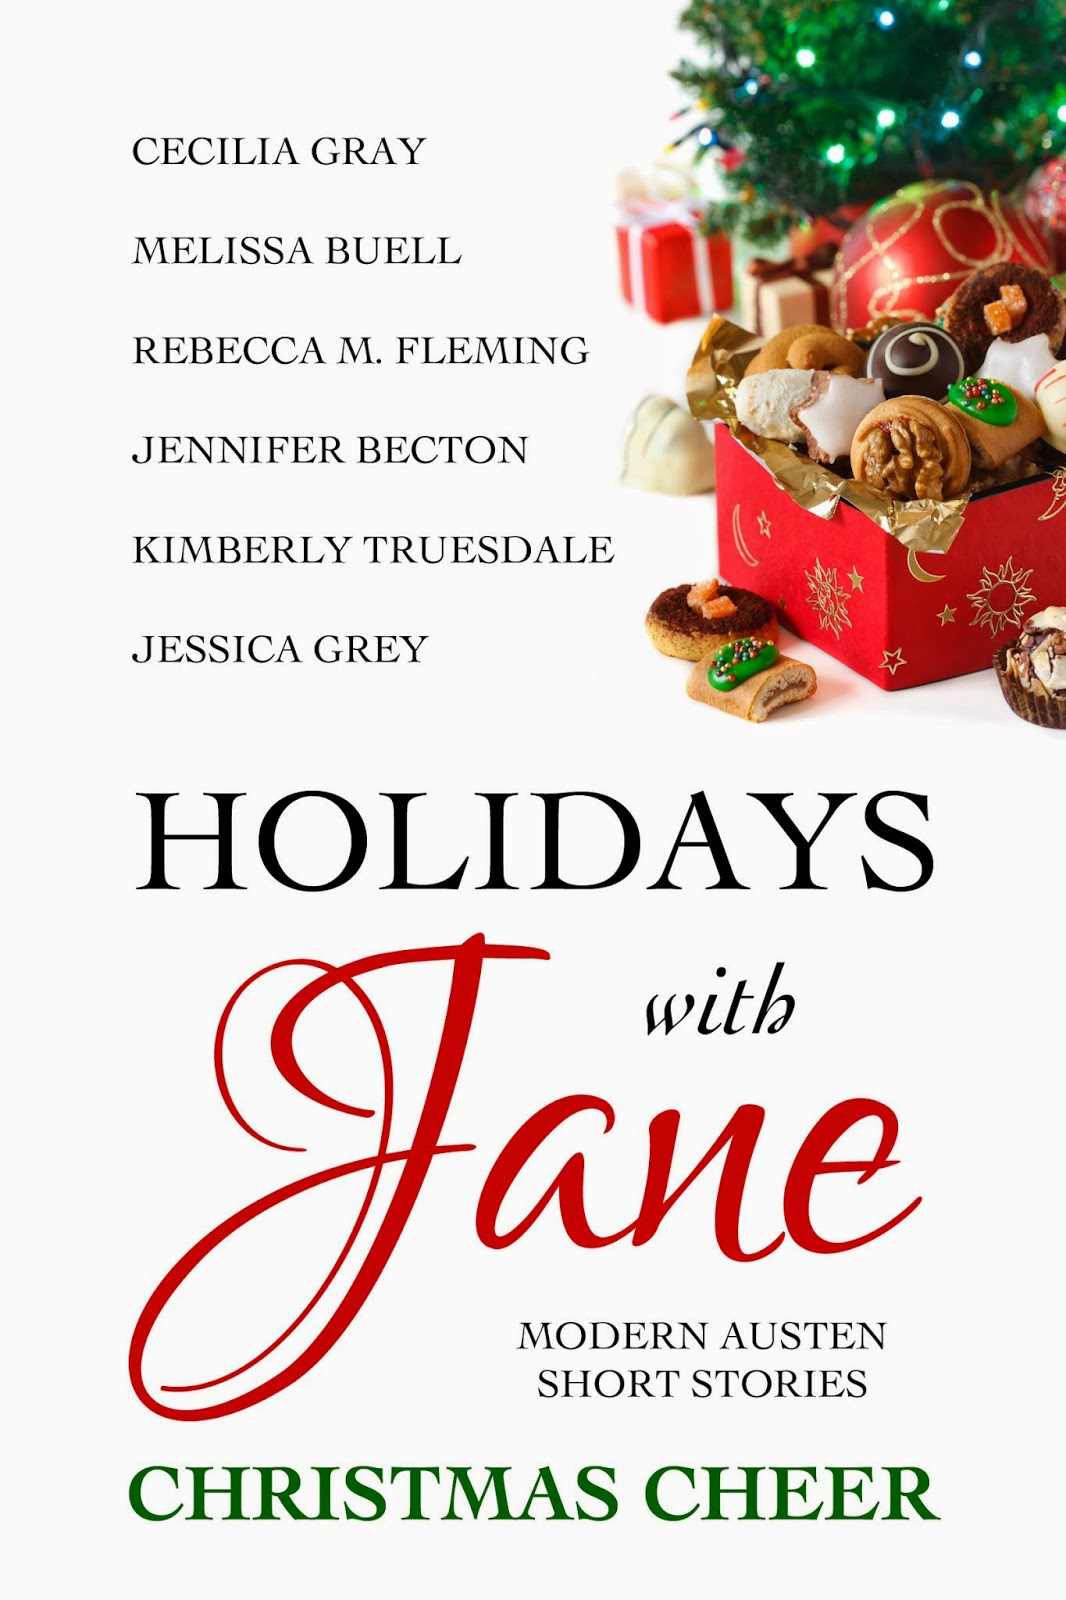 Book cover: Holidays with Jane Christmas Cheer by various authors